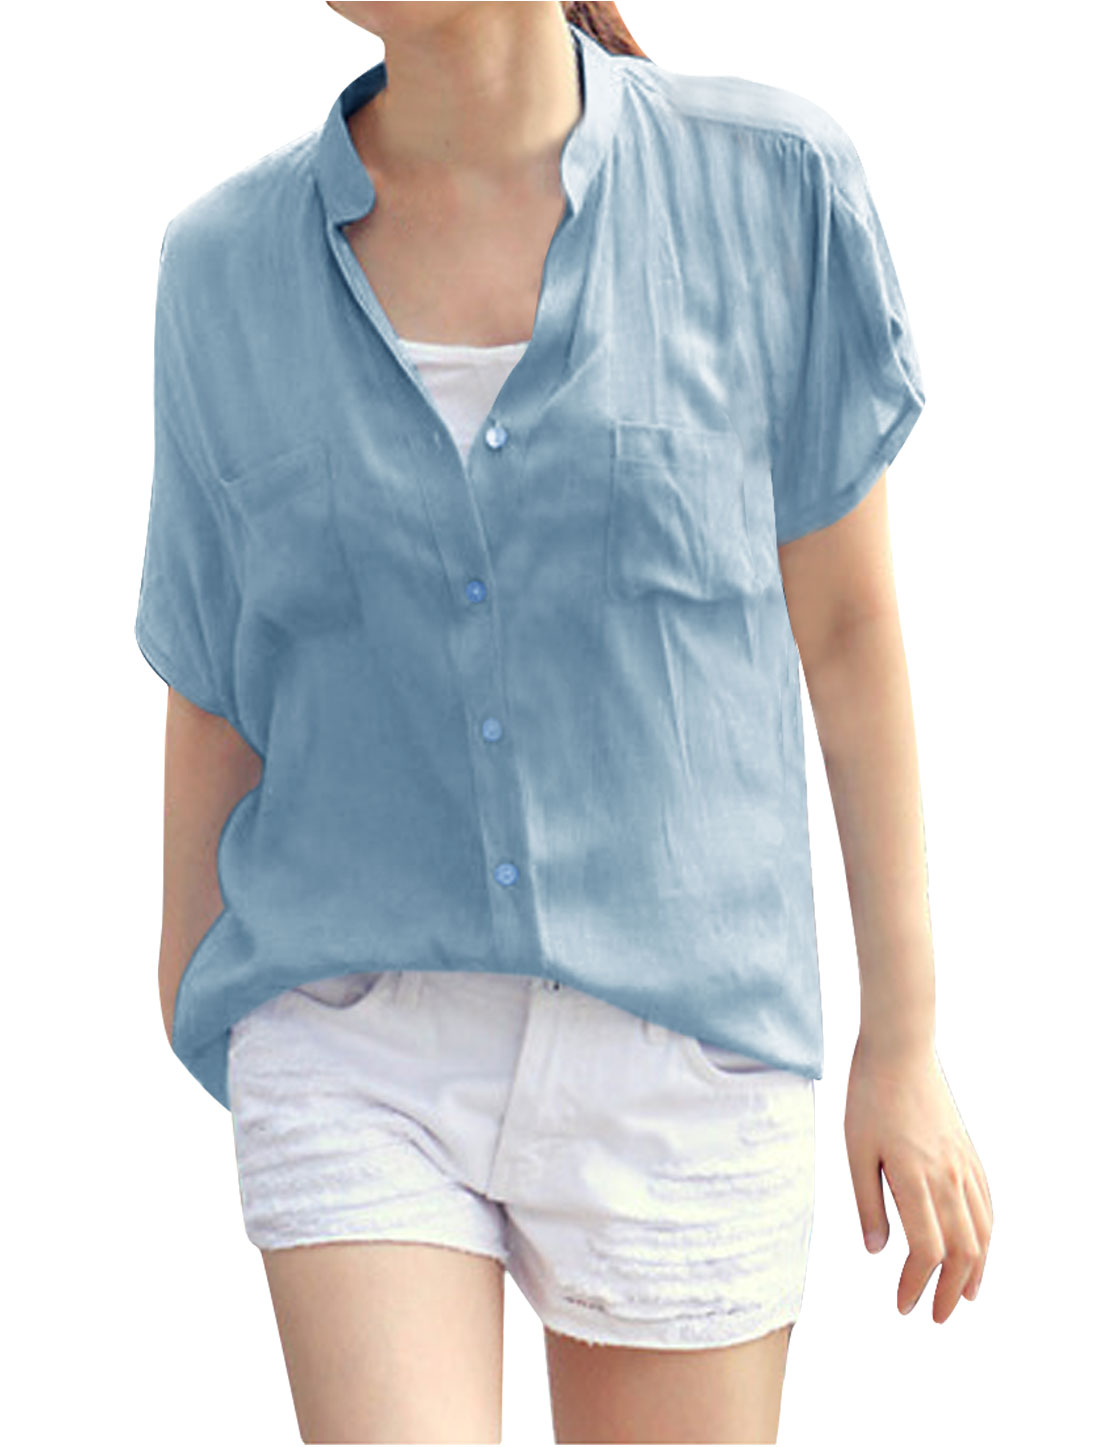 Woman Chic V-Neck Short Dolman Sleeve Button Down Light Blue Blouse S